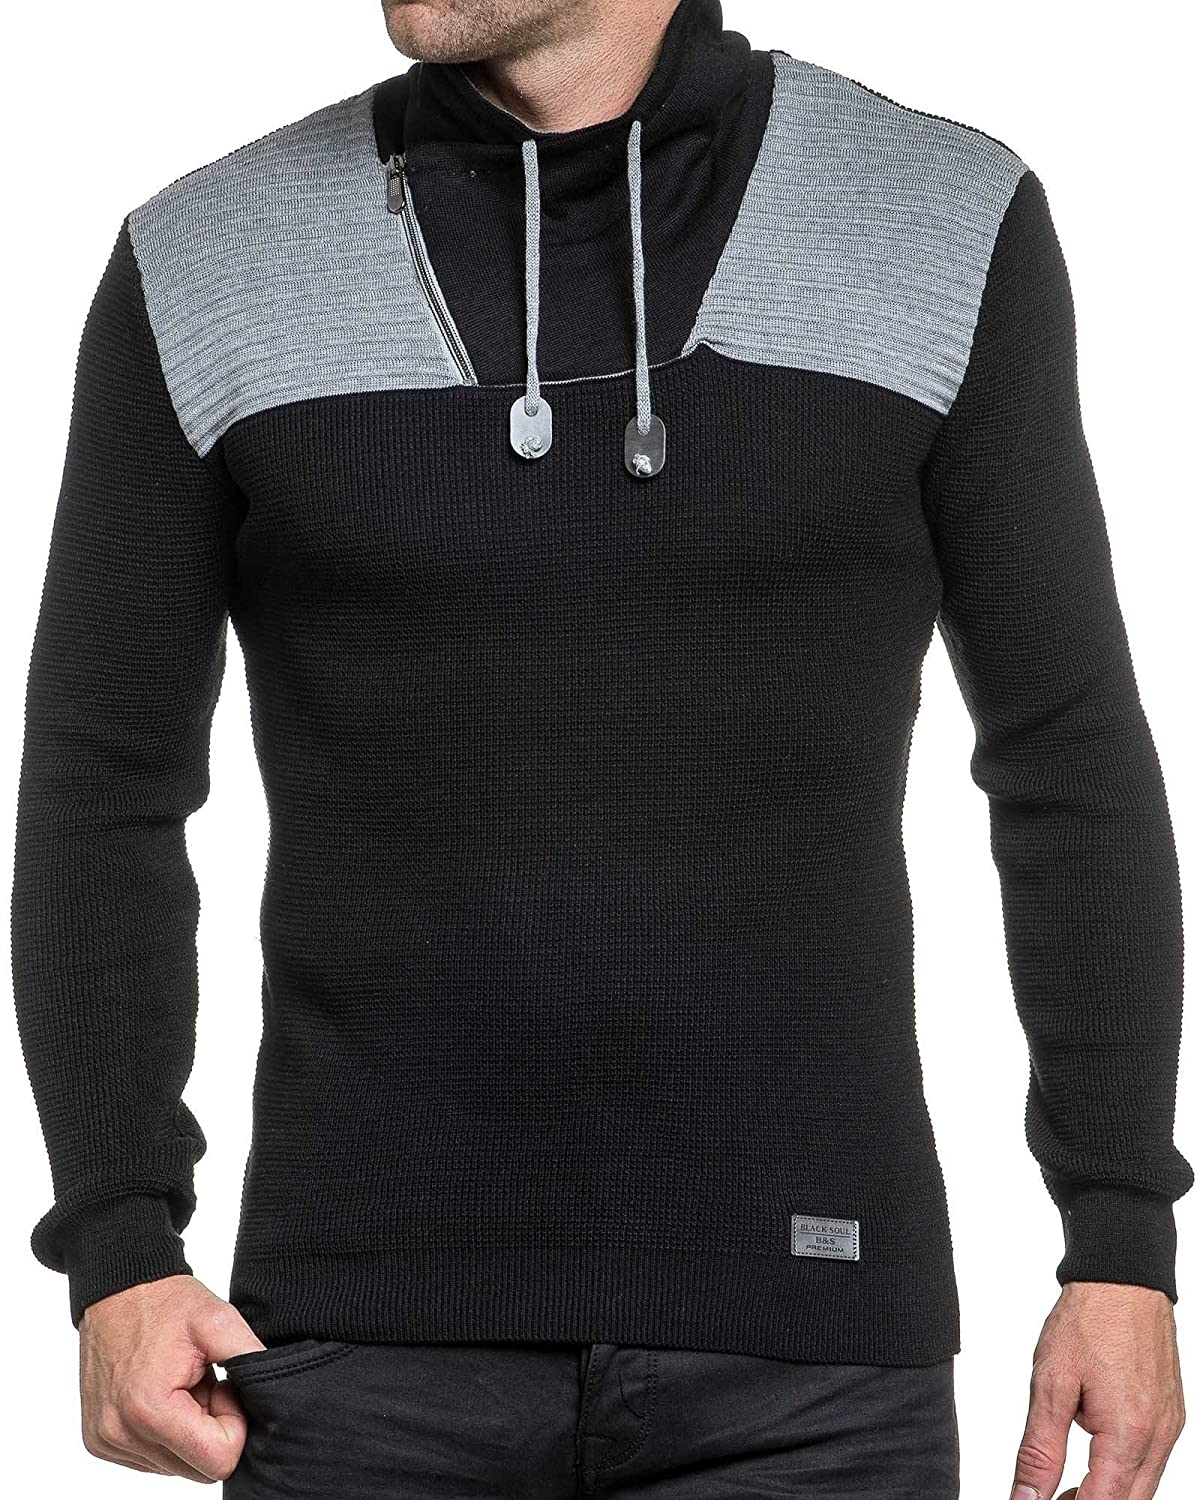 BLZ jeans - Pullover black and gray zipped shawl collar man